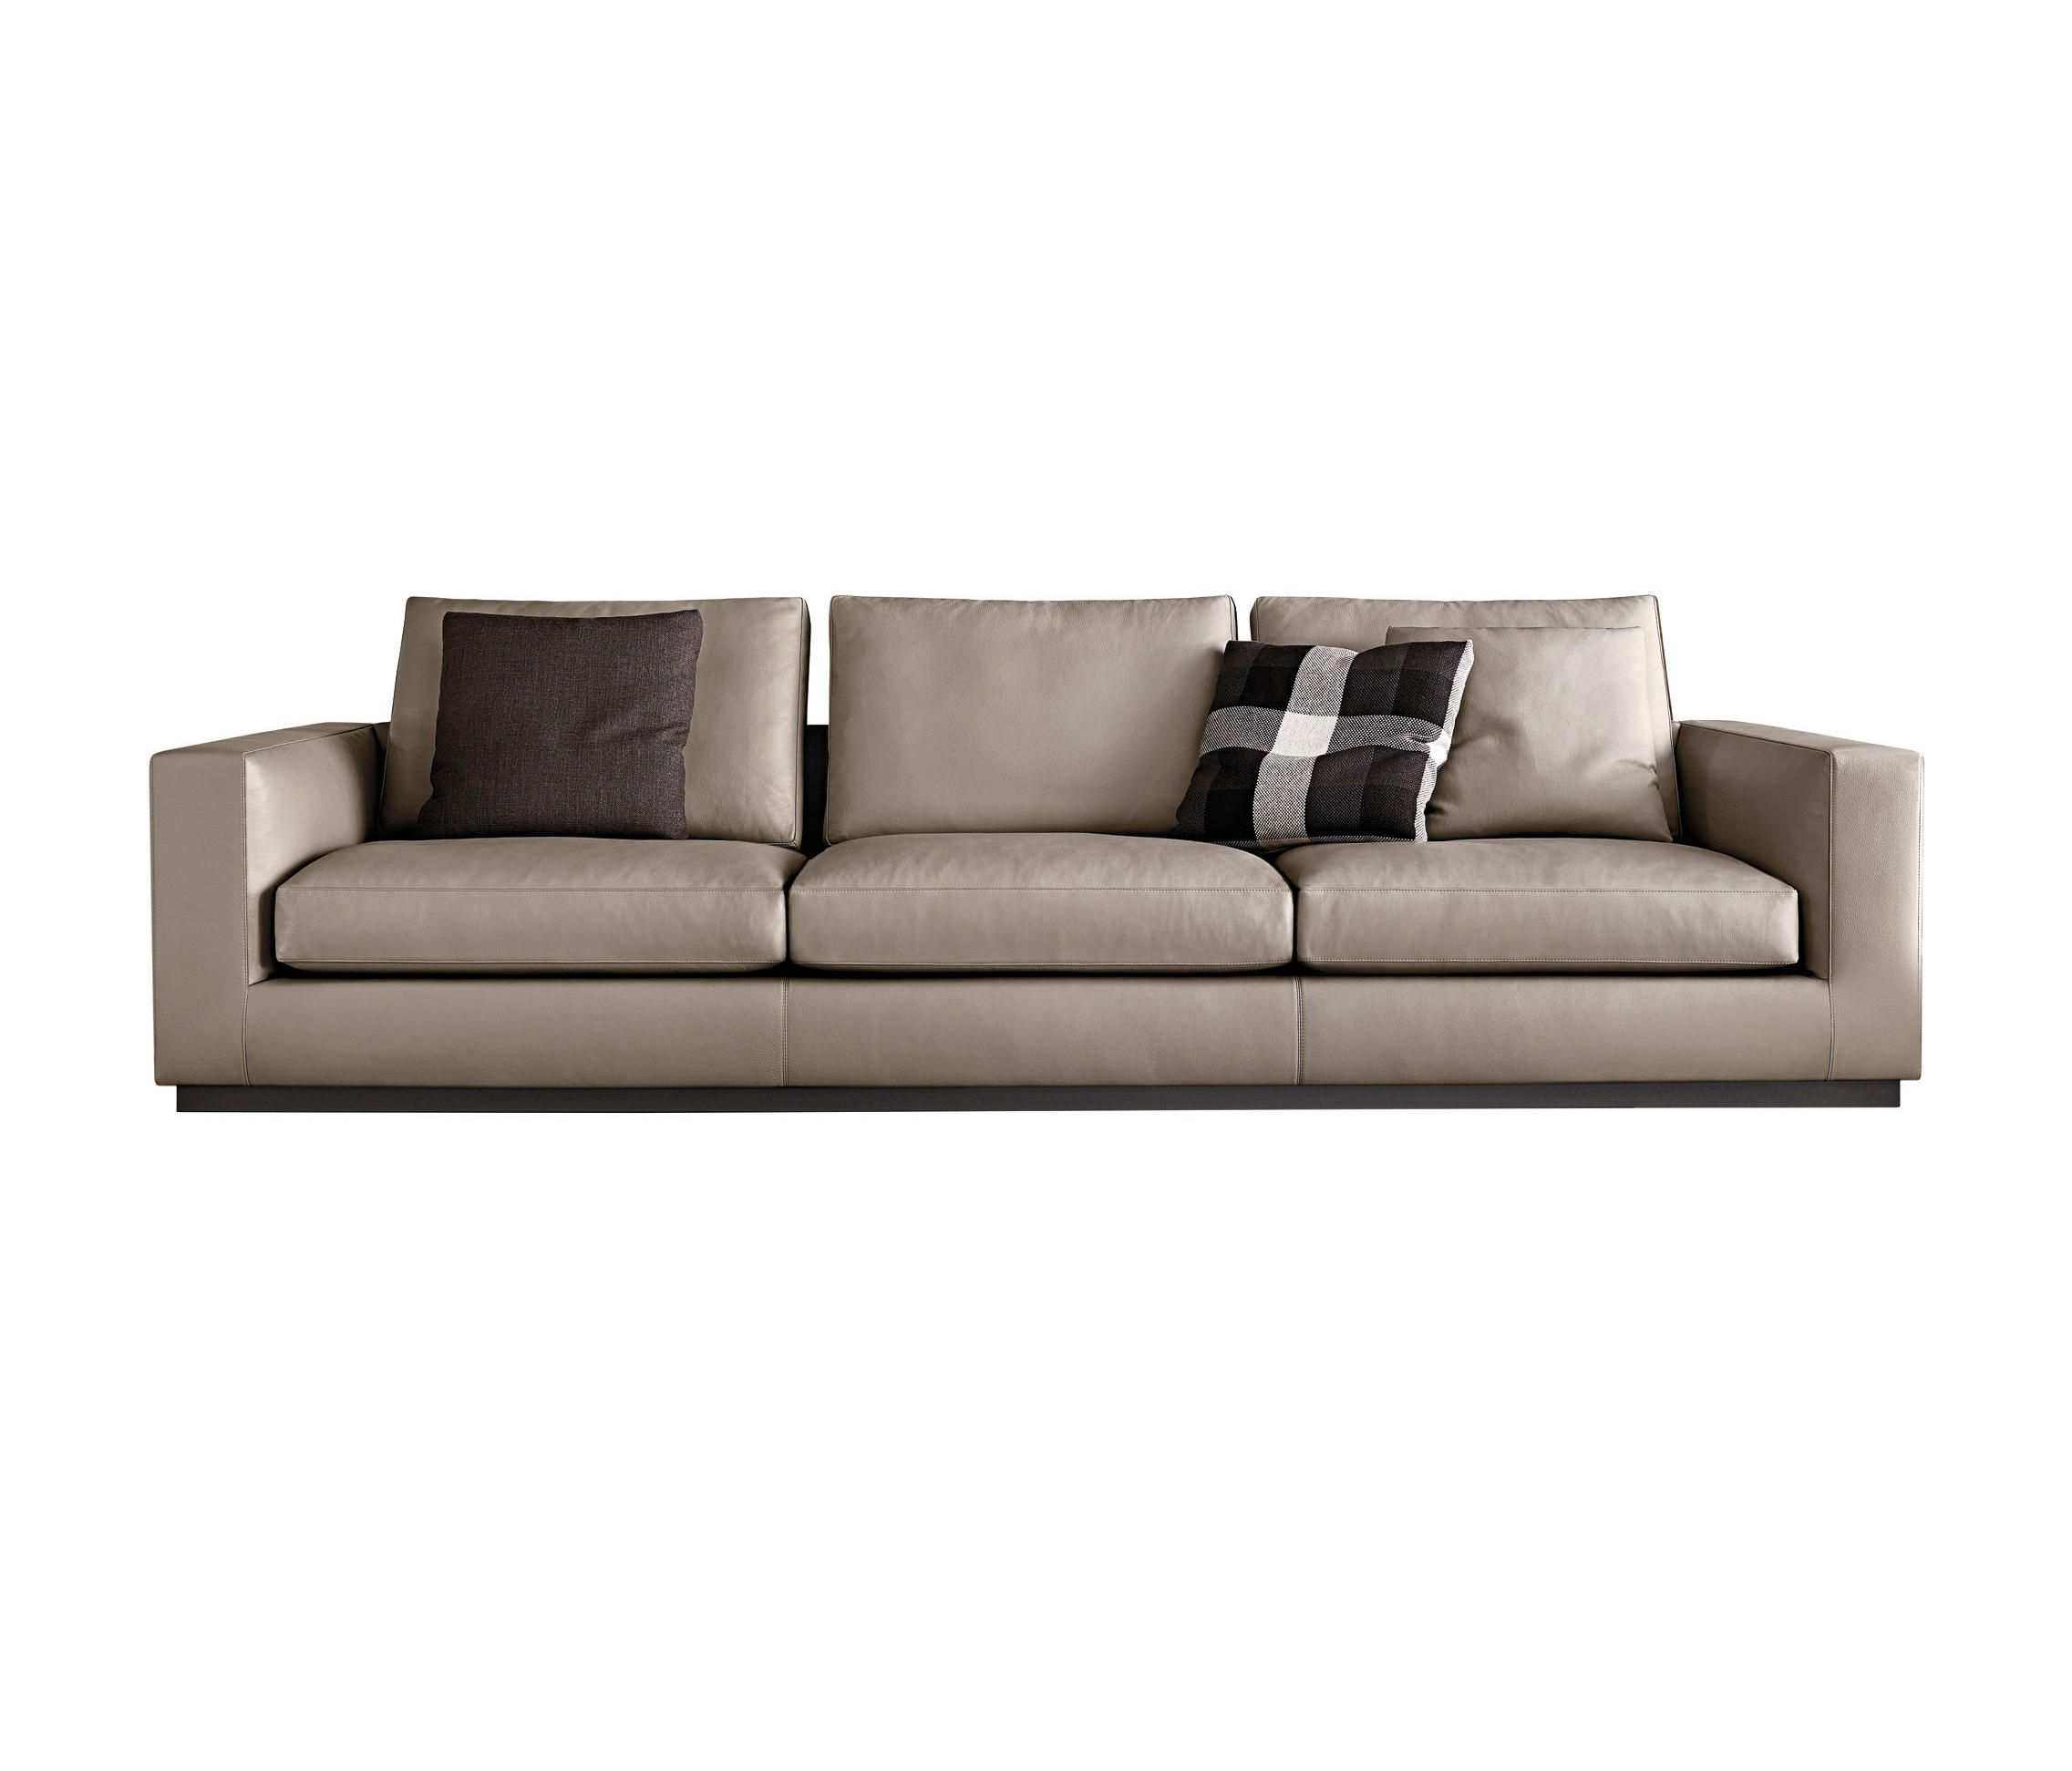 Andersen Line Designer Lounge Sofas From Minotti All Information High Resolution Images Cads Catalogues Contact Info Minotti Furniture Sofa Minotti